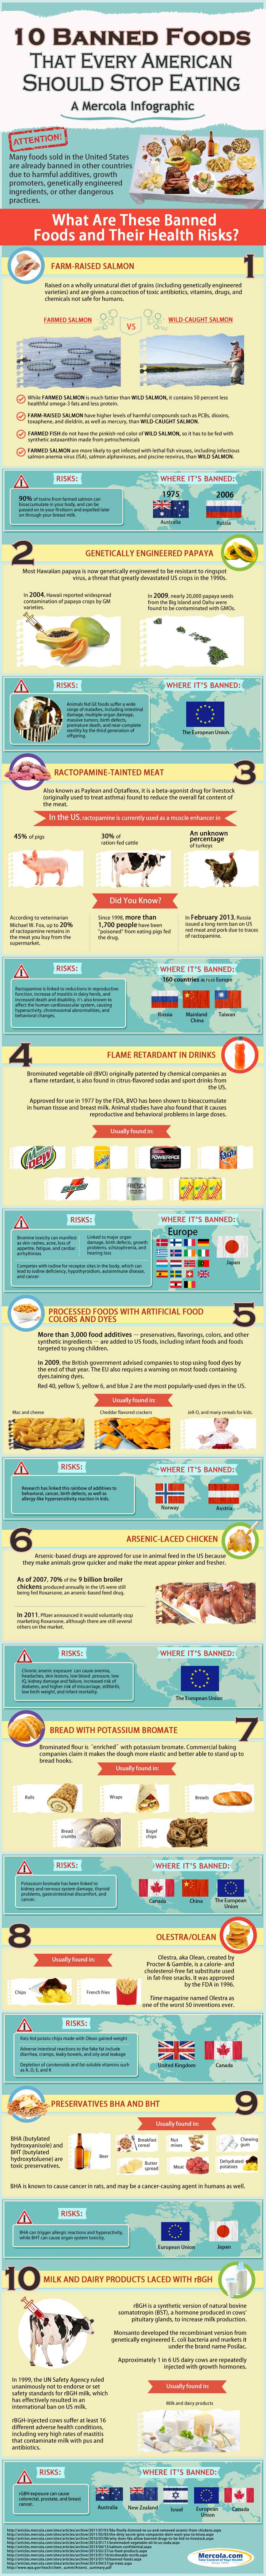 bad foods infographic